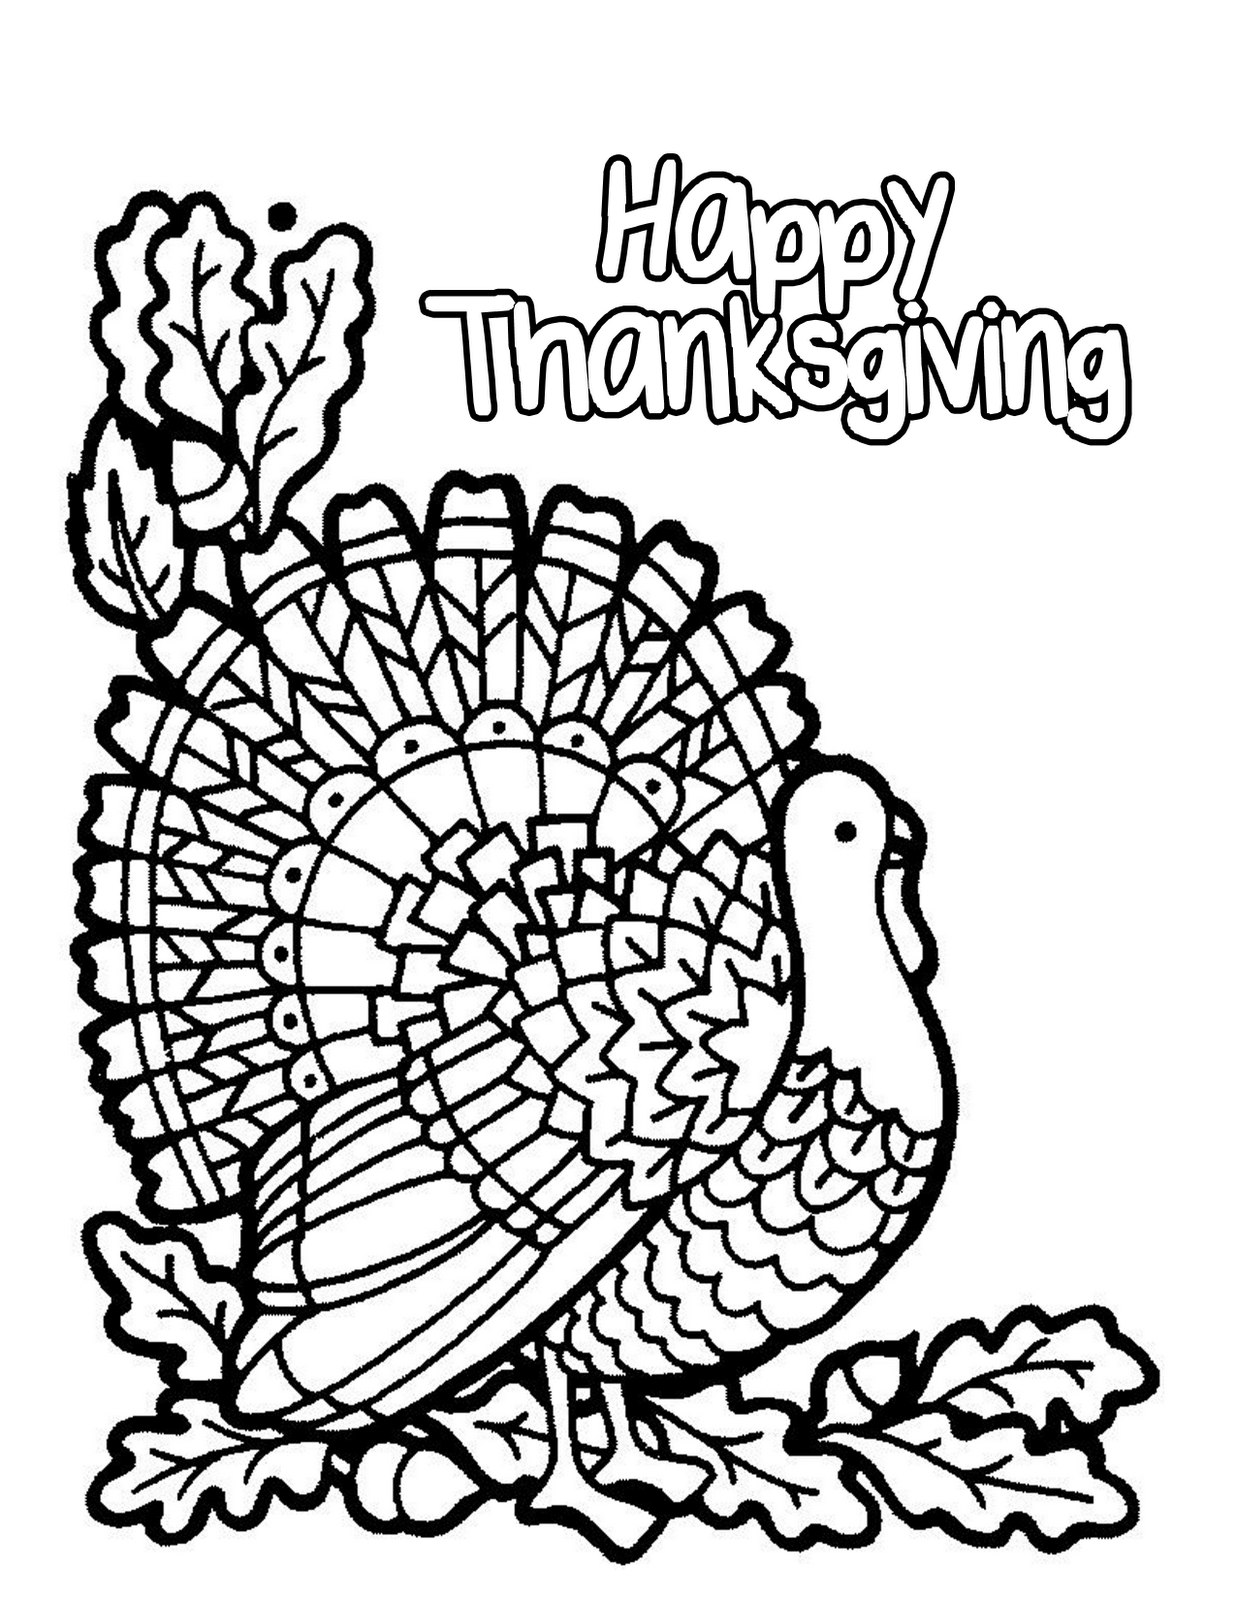 Free Coloring Pages For Adults, Download Free Clip Art, Free.